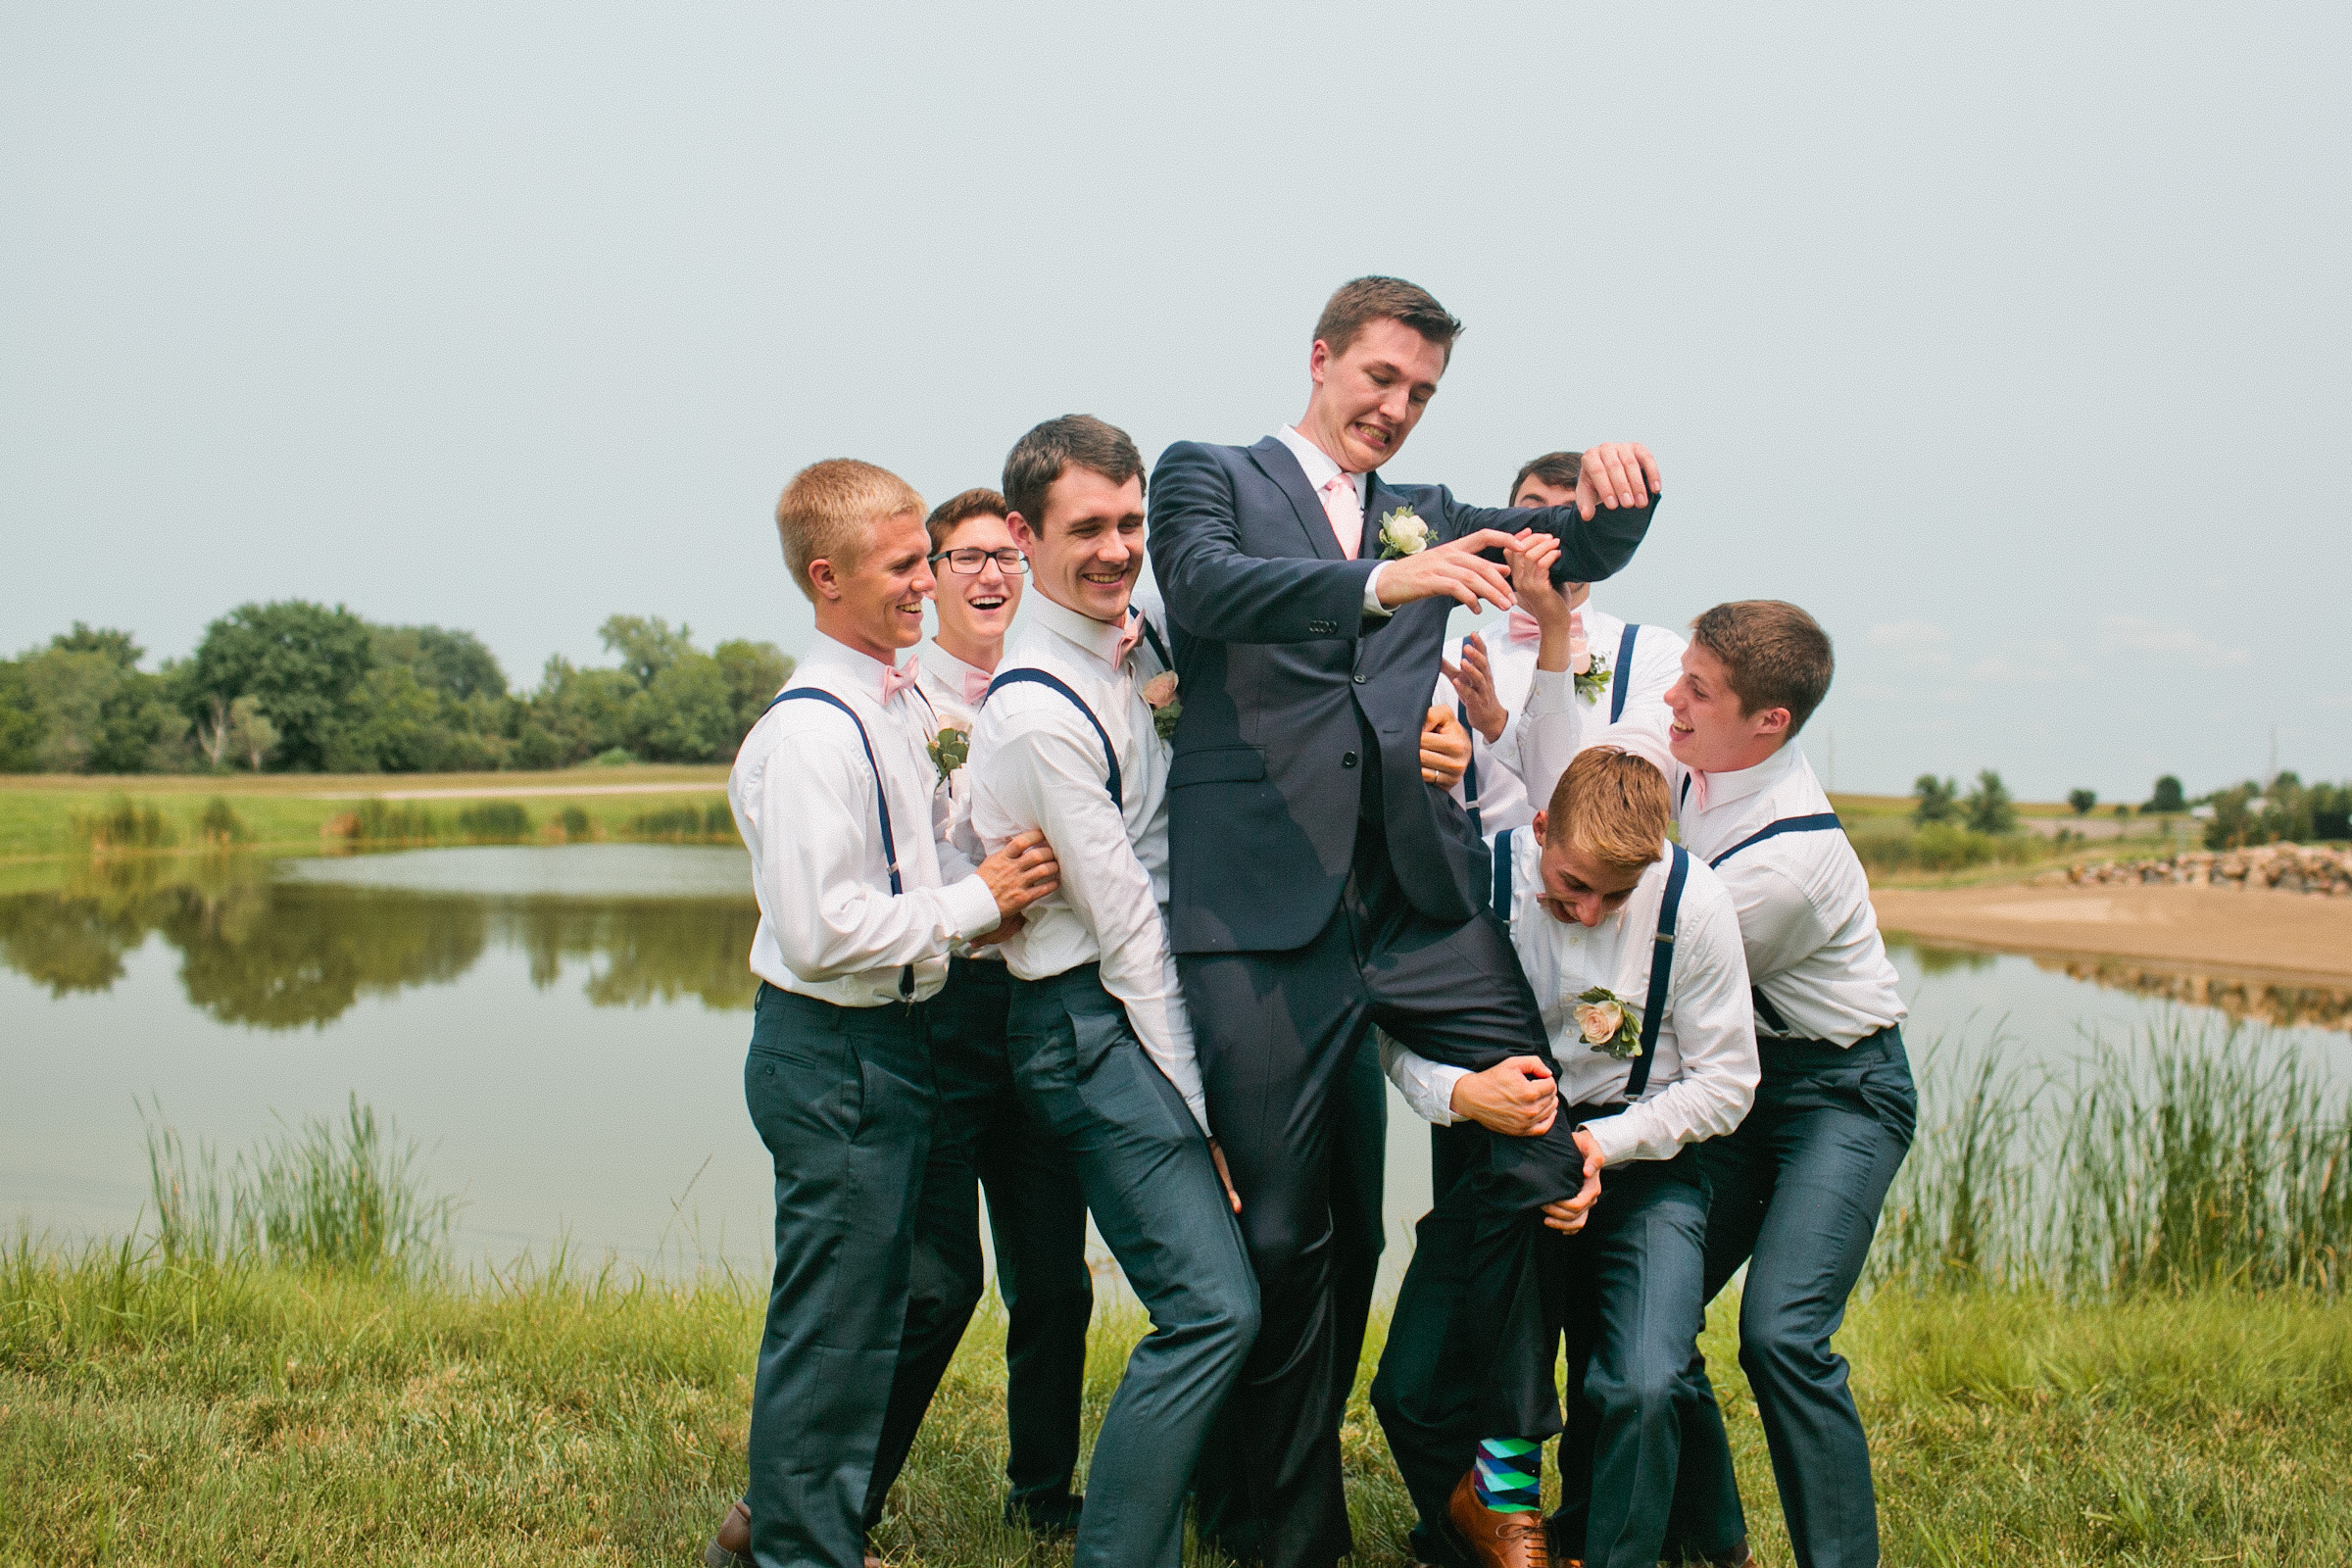 groom-getting-picked-up-by-friends